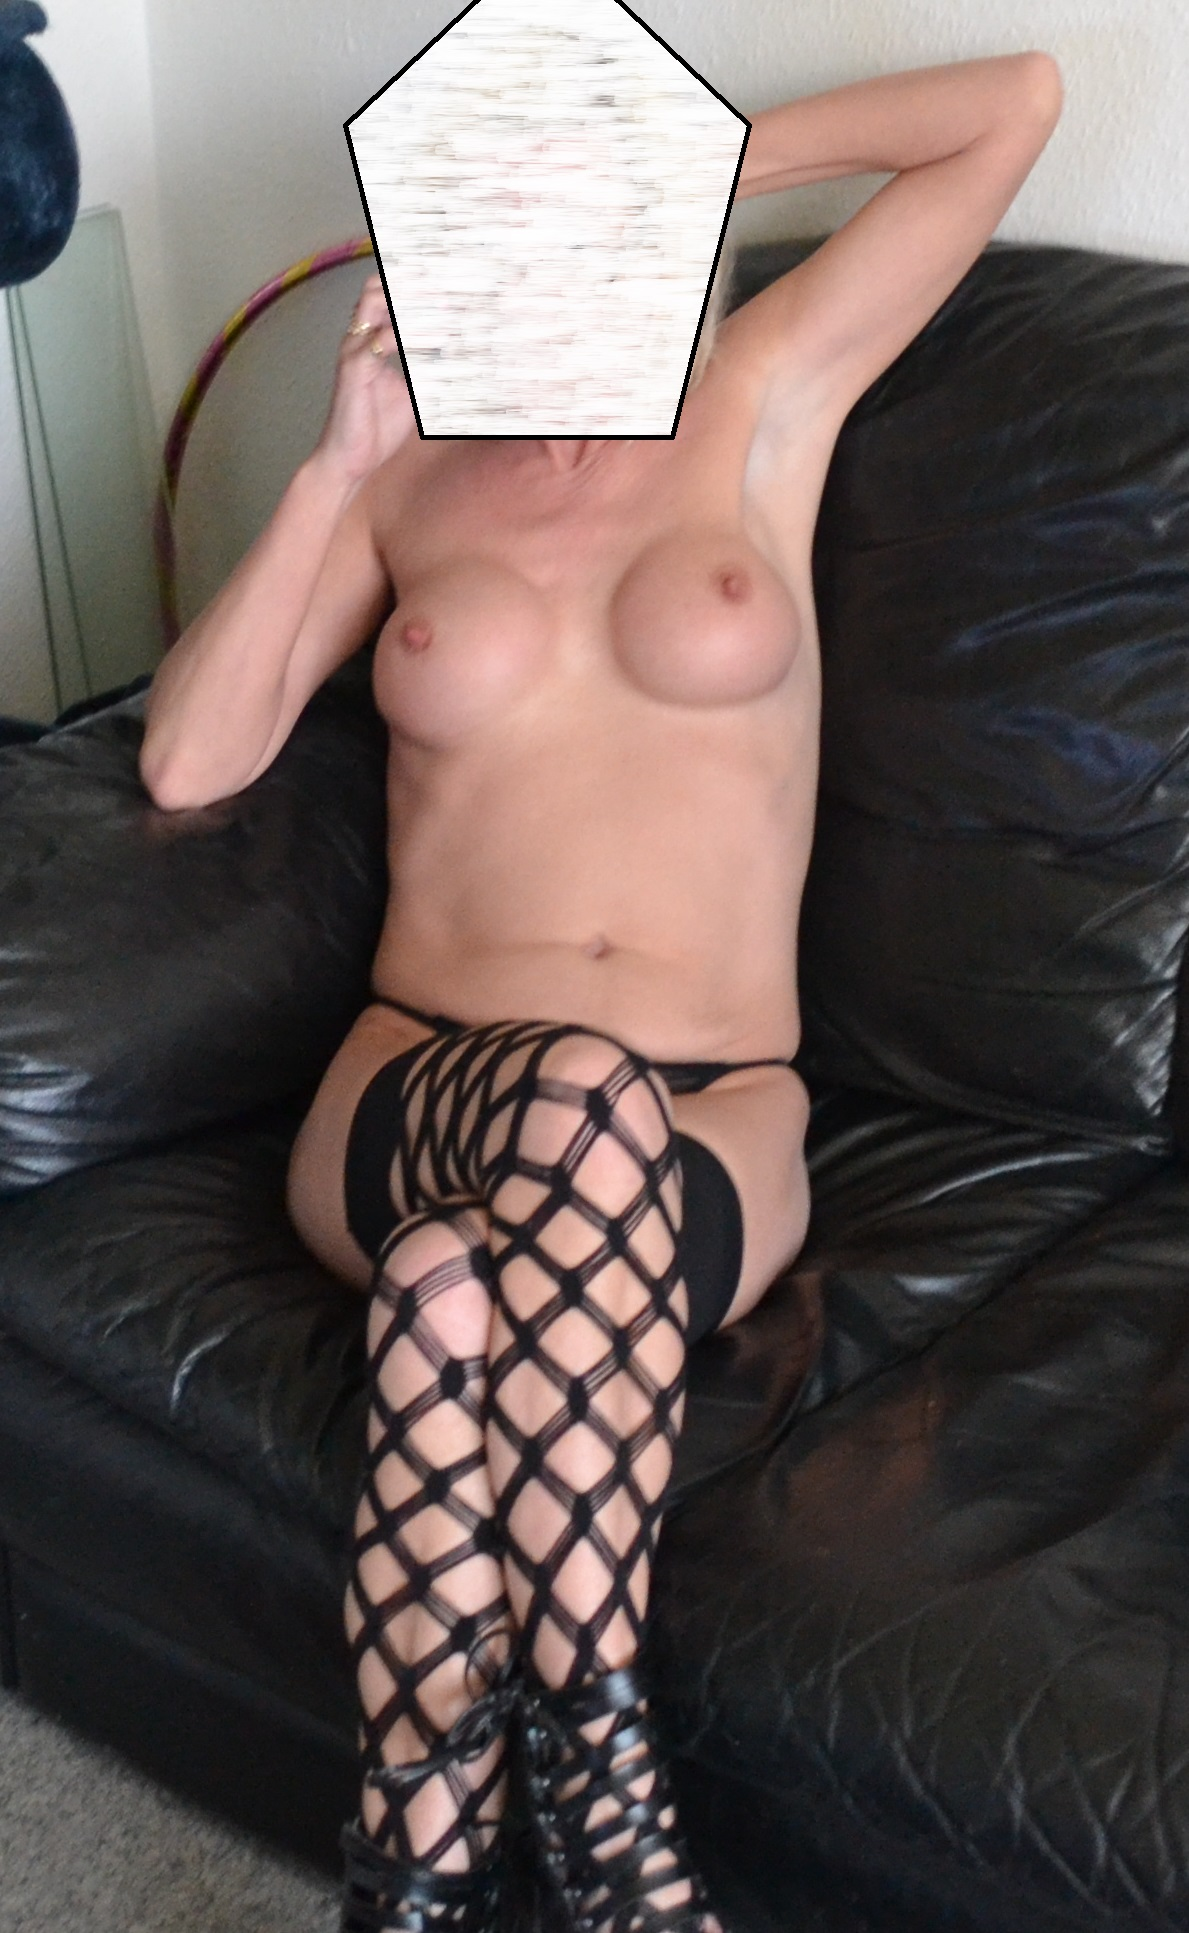 bornholm sex escort og massage